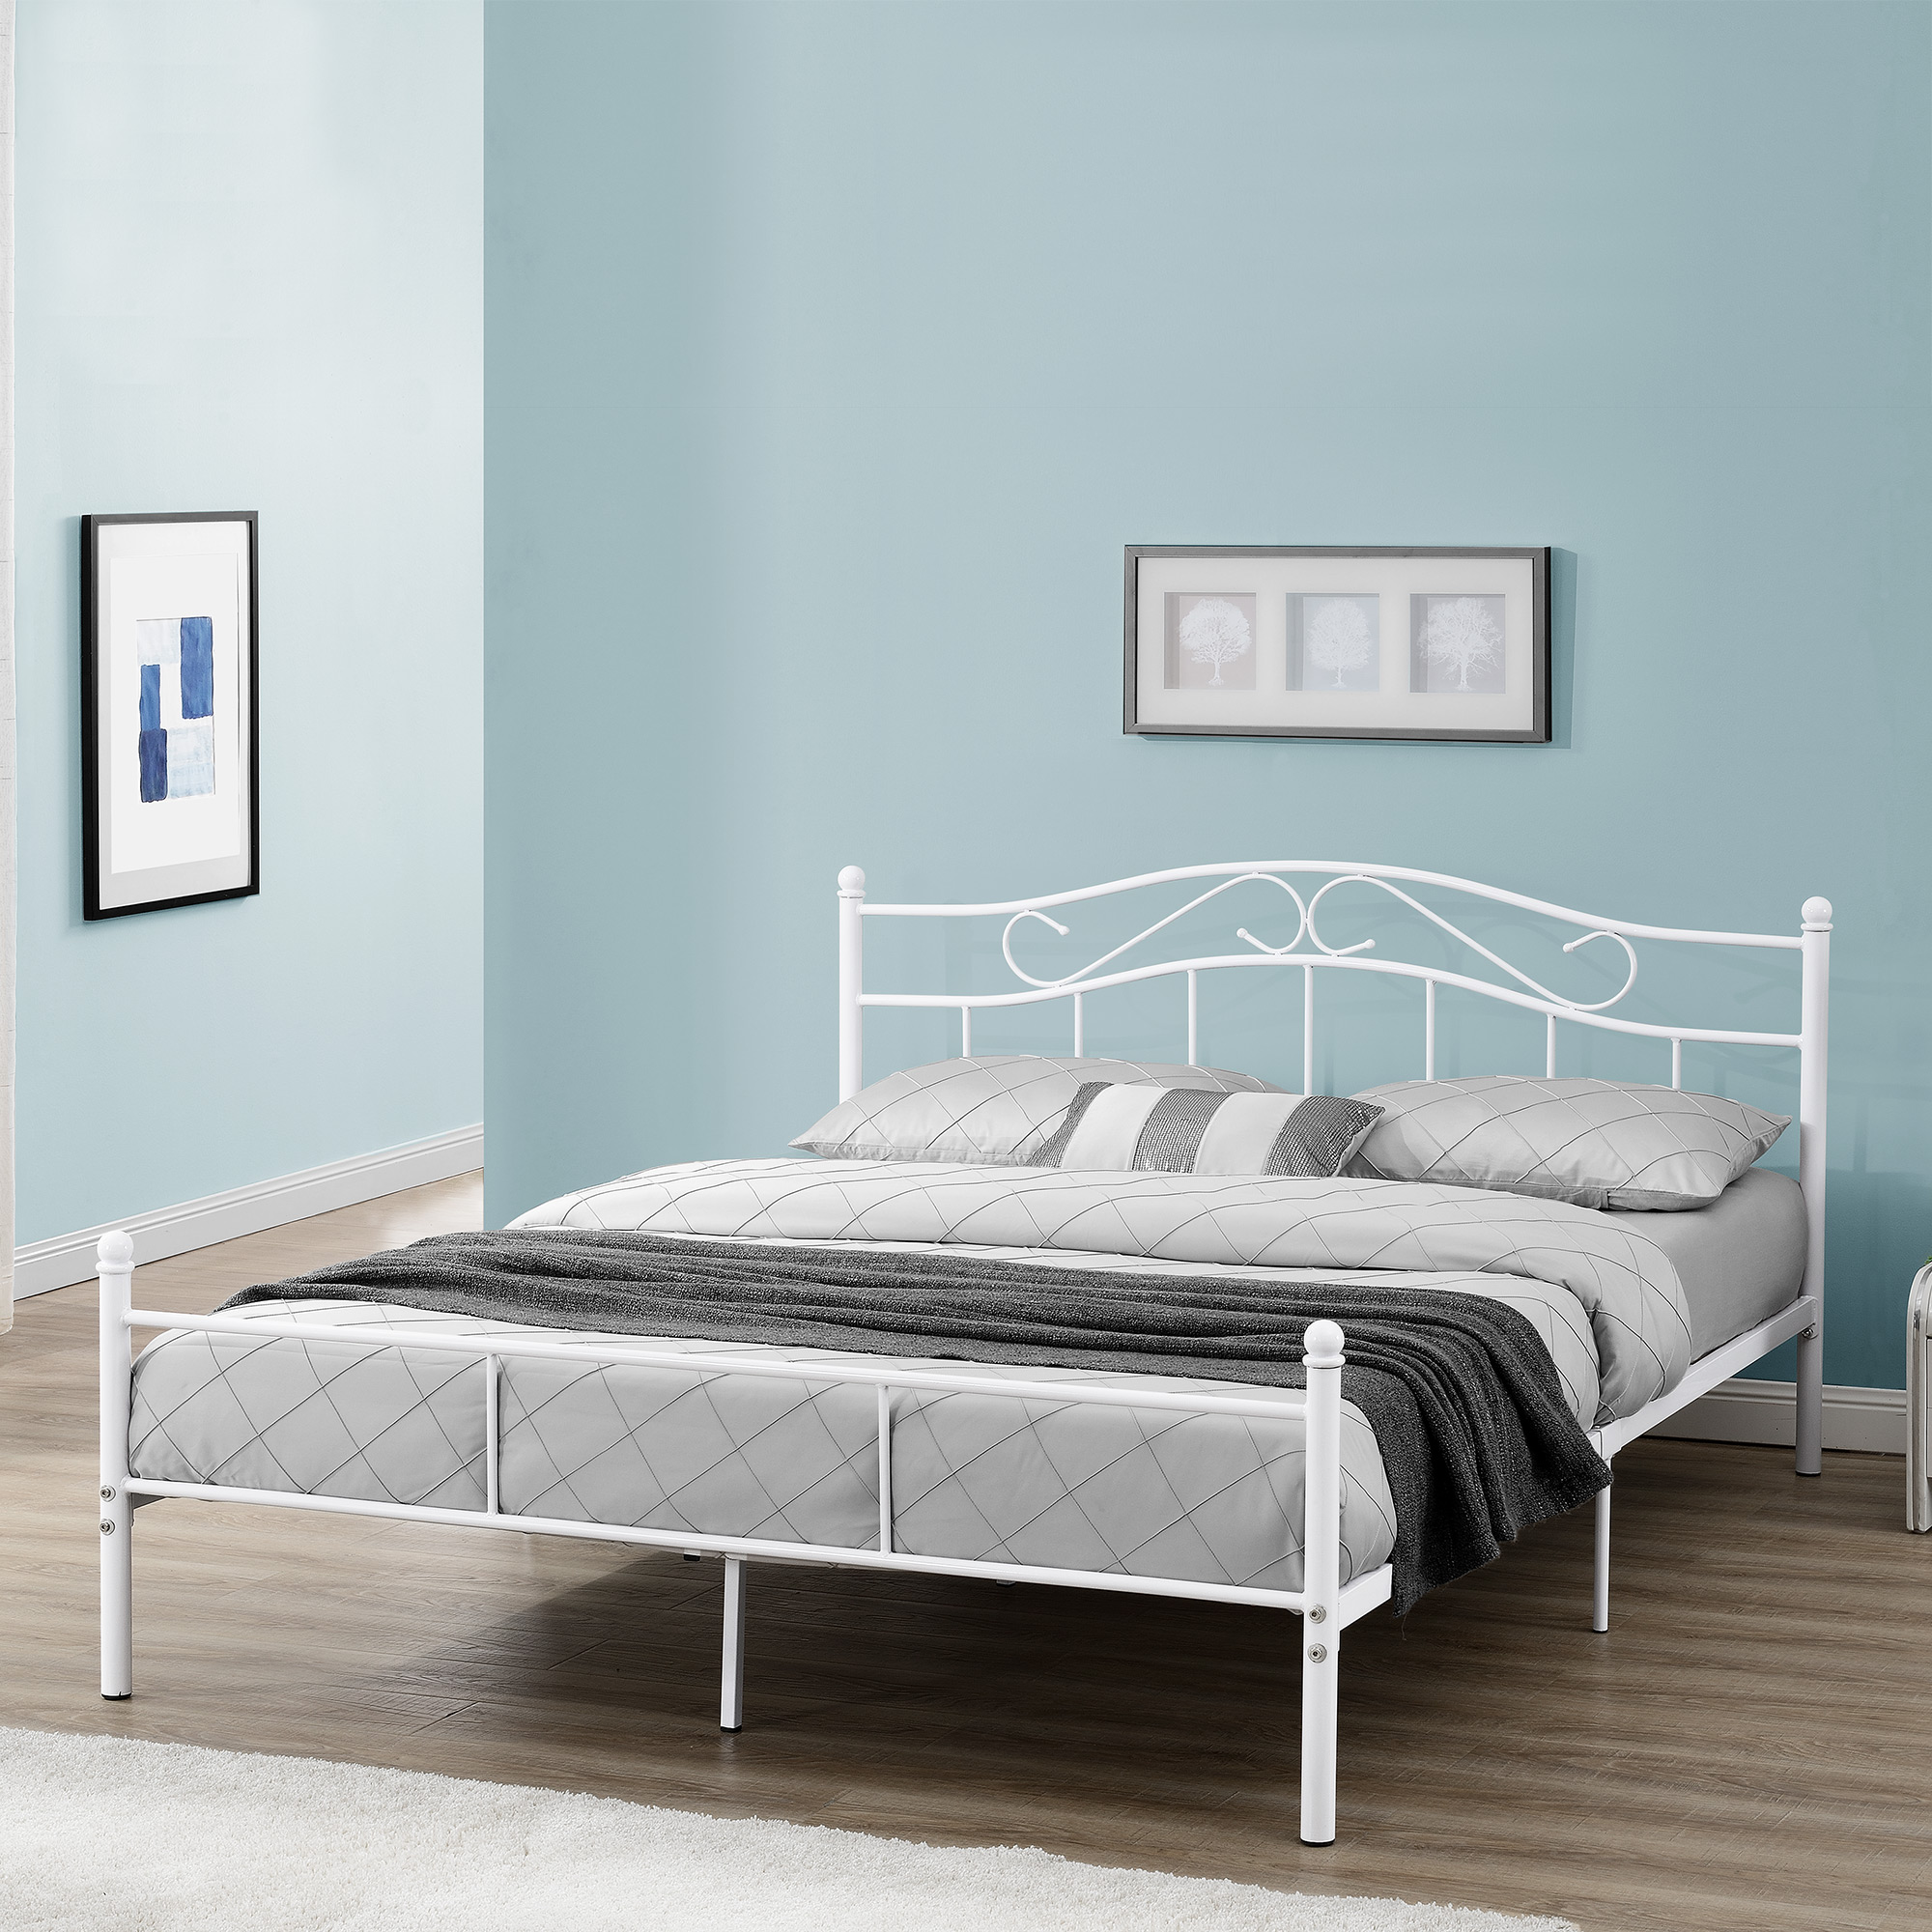 metallbett 140 160 180 200x200cm bett bettgestell doppelbett jugend ebay. Black Bedroom Furniture Sets. Home Design Ideas